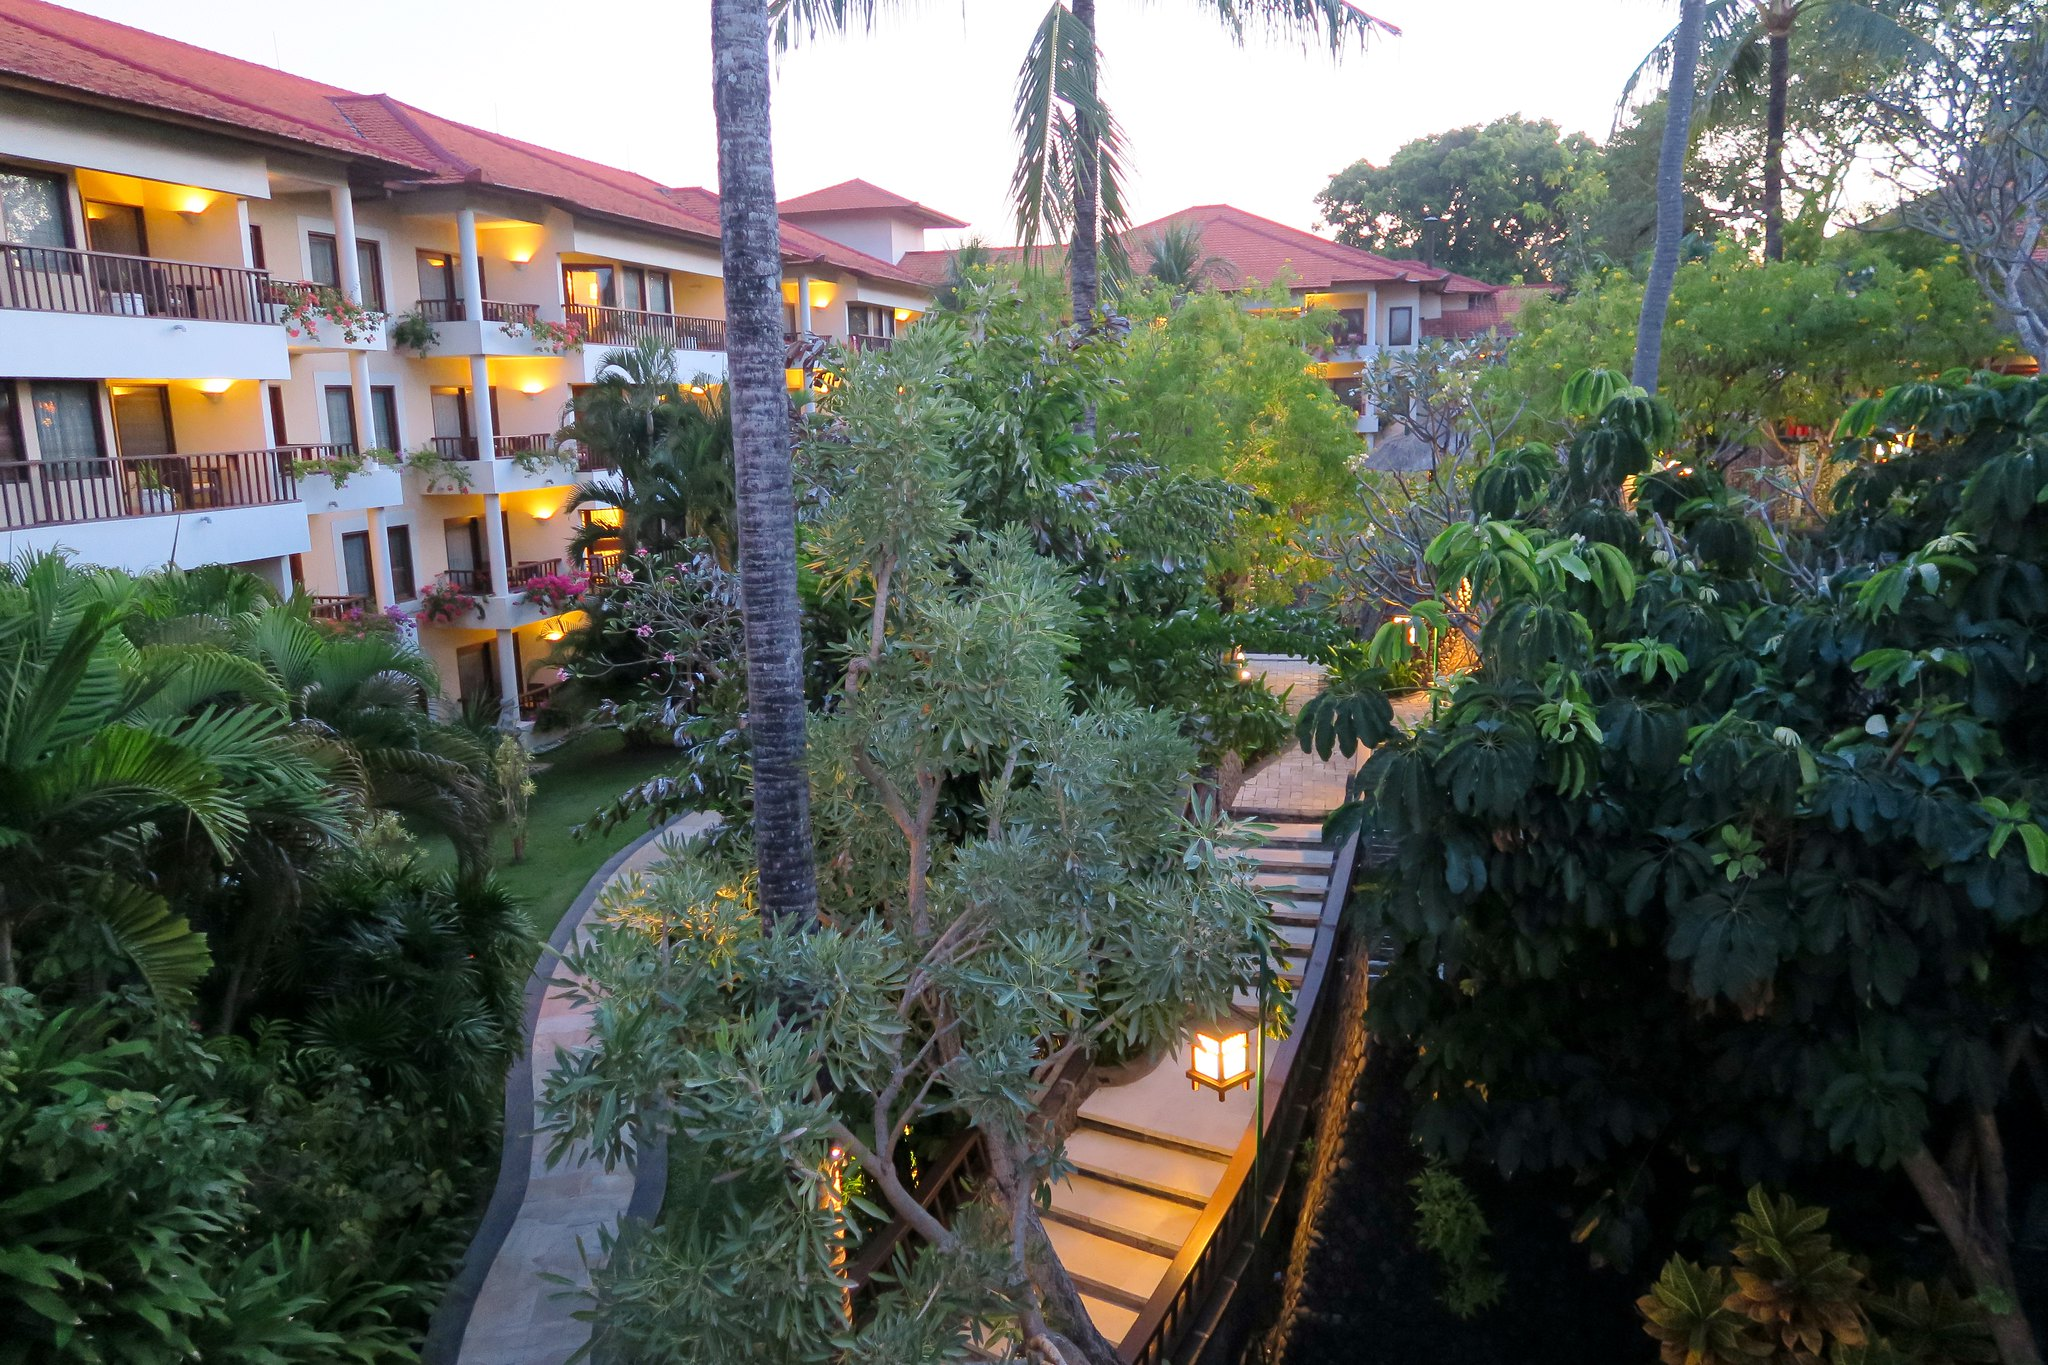 Our Balinese Adventure: Part 1